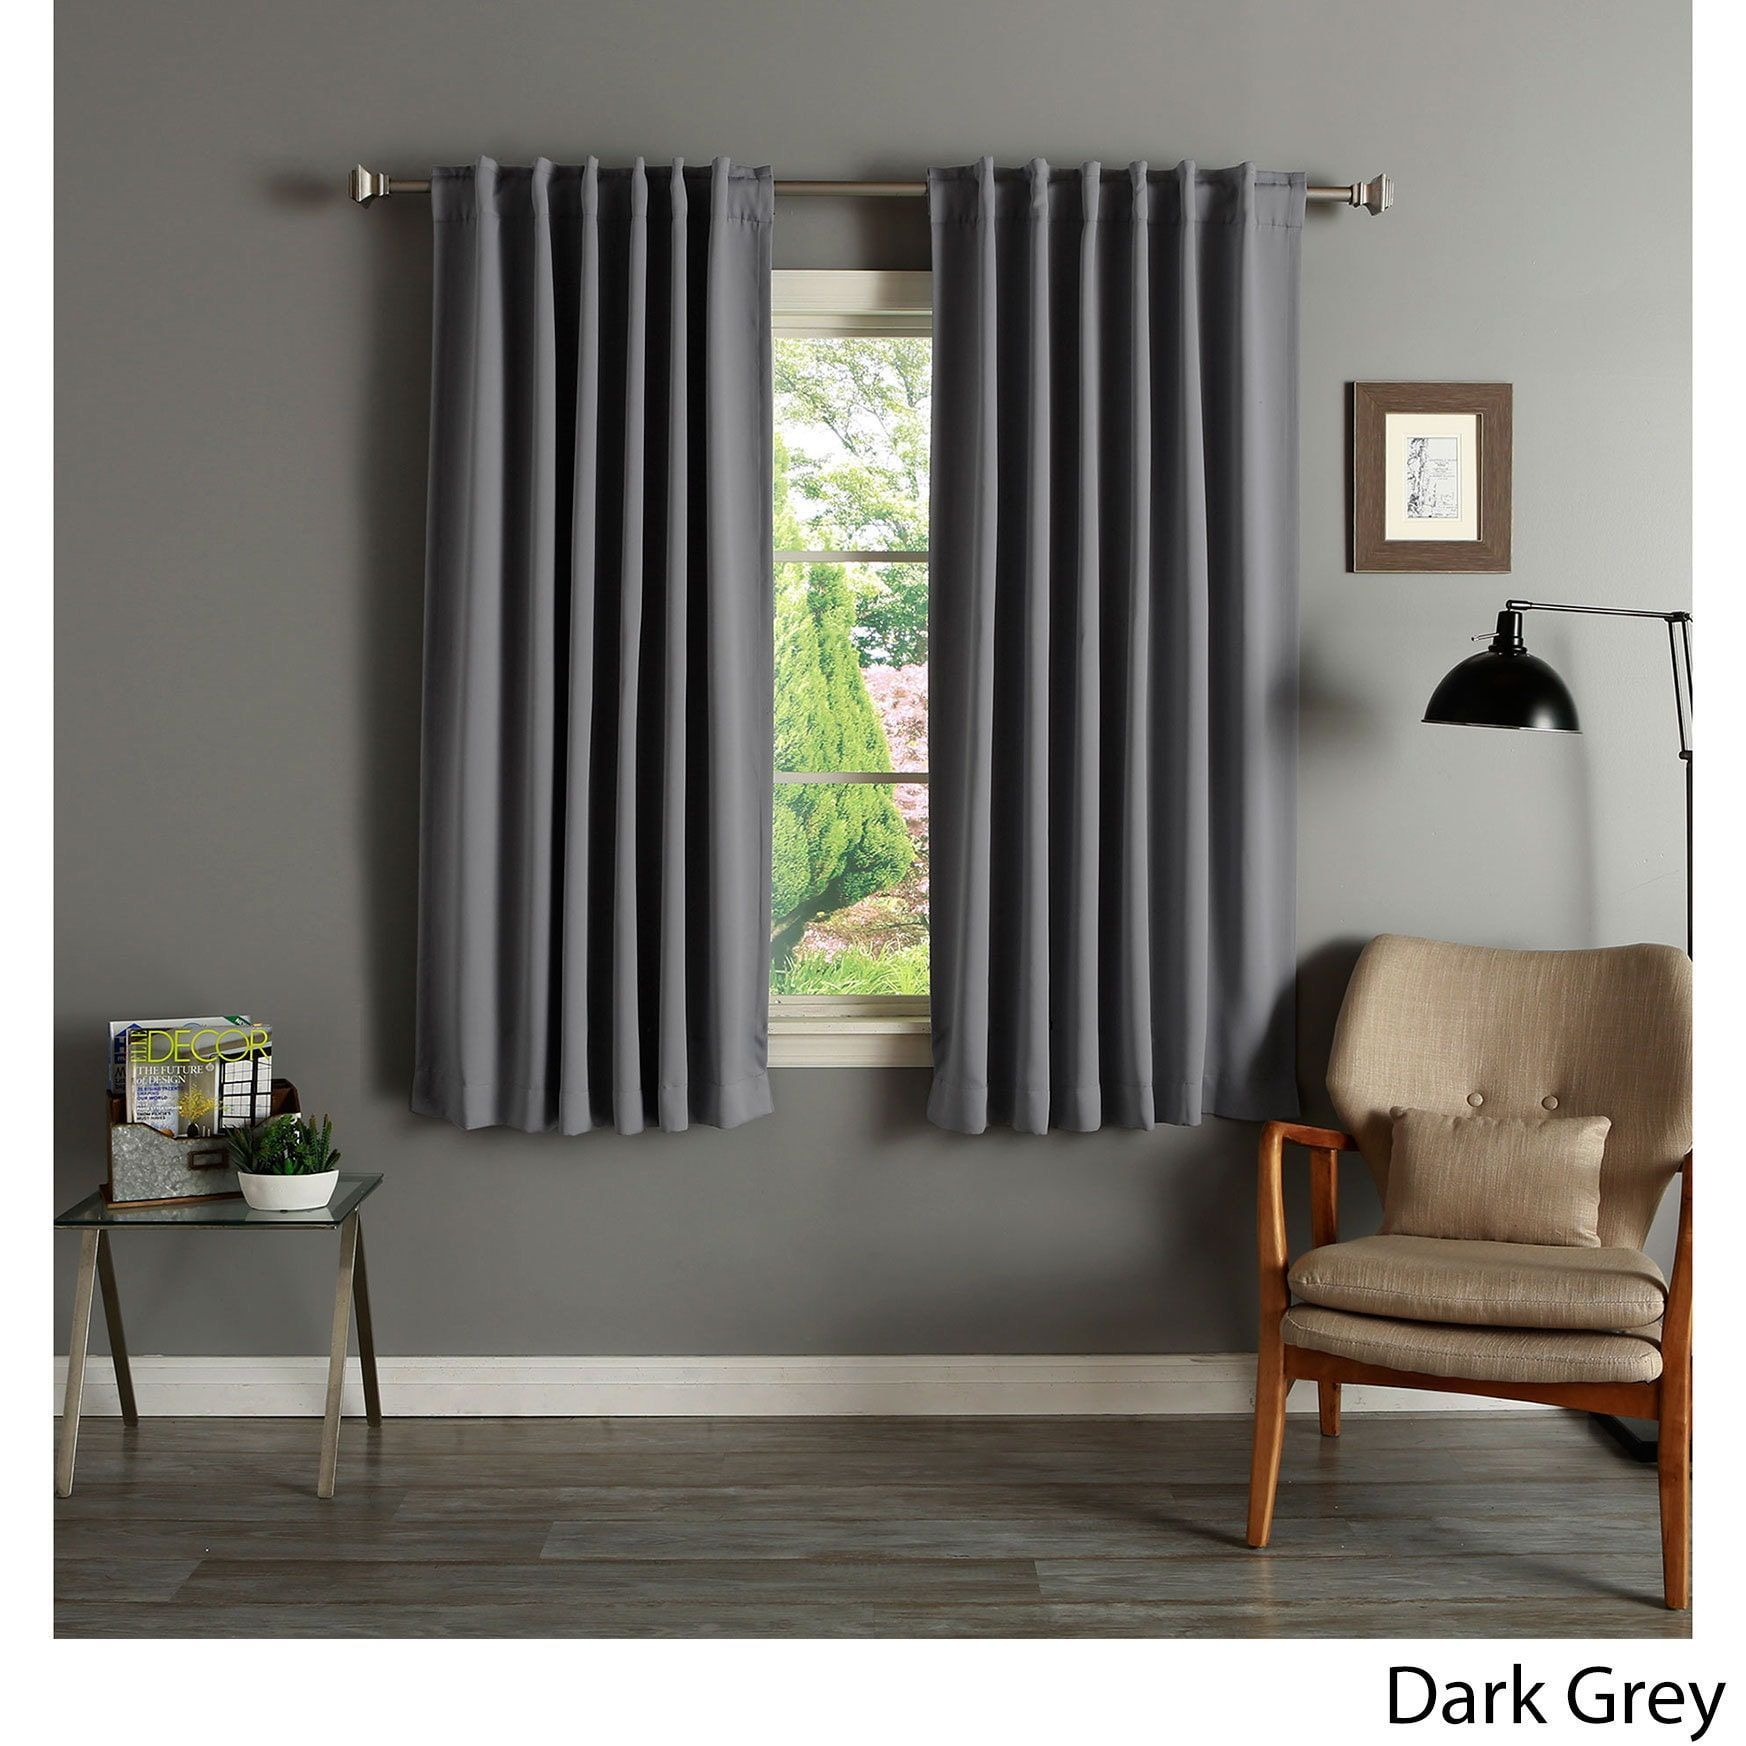 Aurora Home Solid Insulated Thermal 63 Inch Blackout Curtain Panel Pair  (Dark Grey)